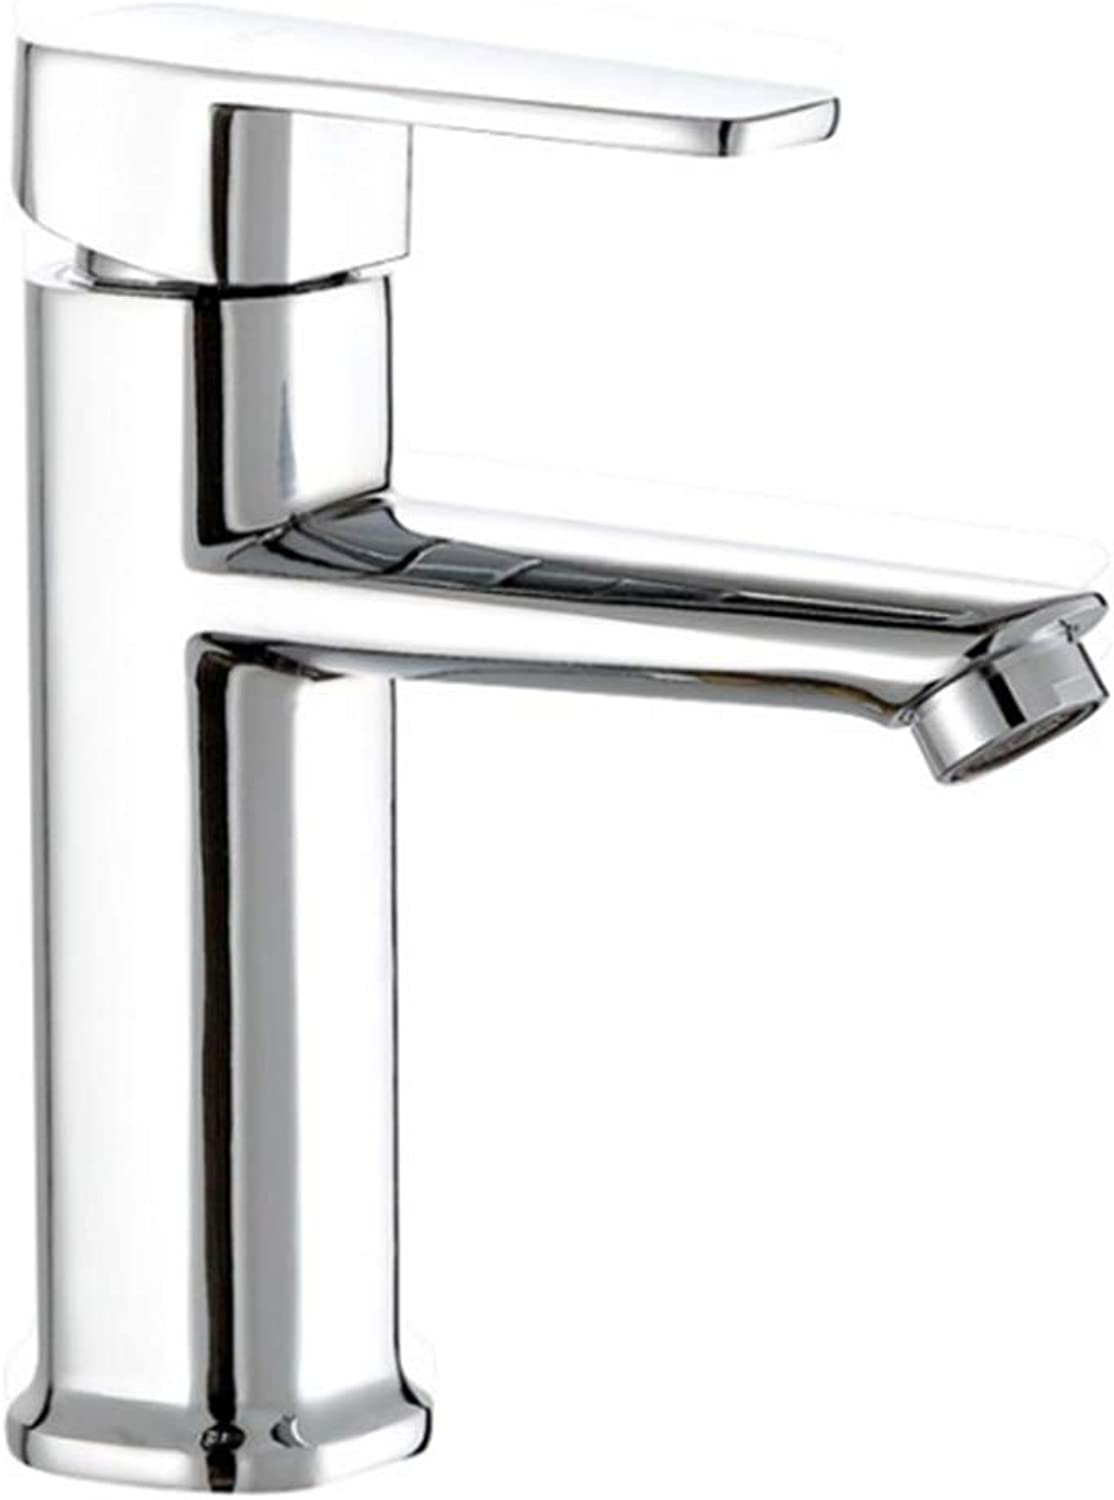 Basin Mixer Tap Bath Fixtures Wash Basinsinkkitchen Single Hole Cold and Hot Basin Basin Faucet Basin Head Faucet